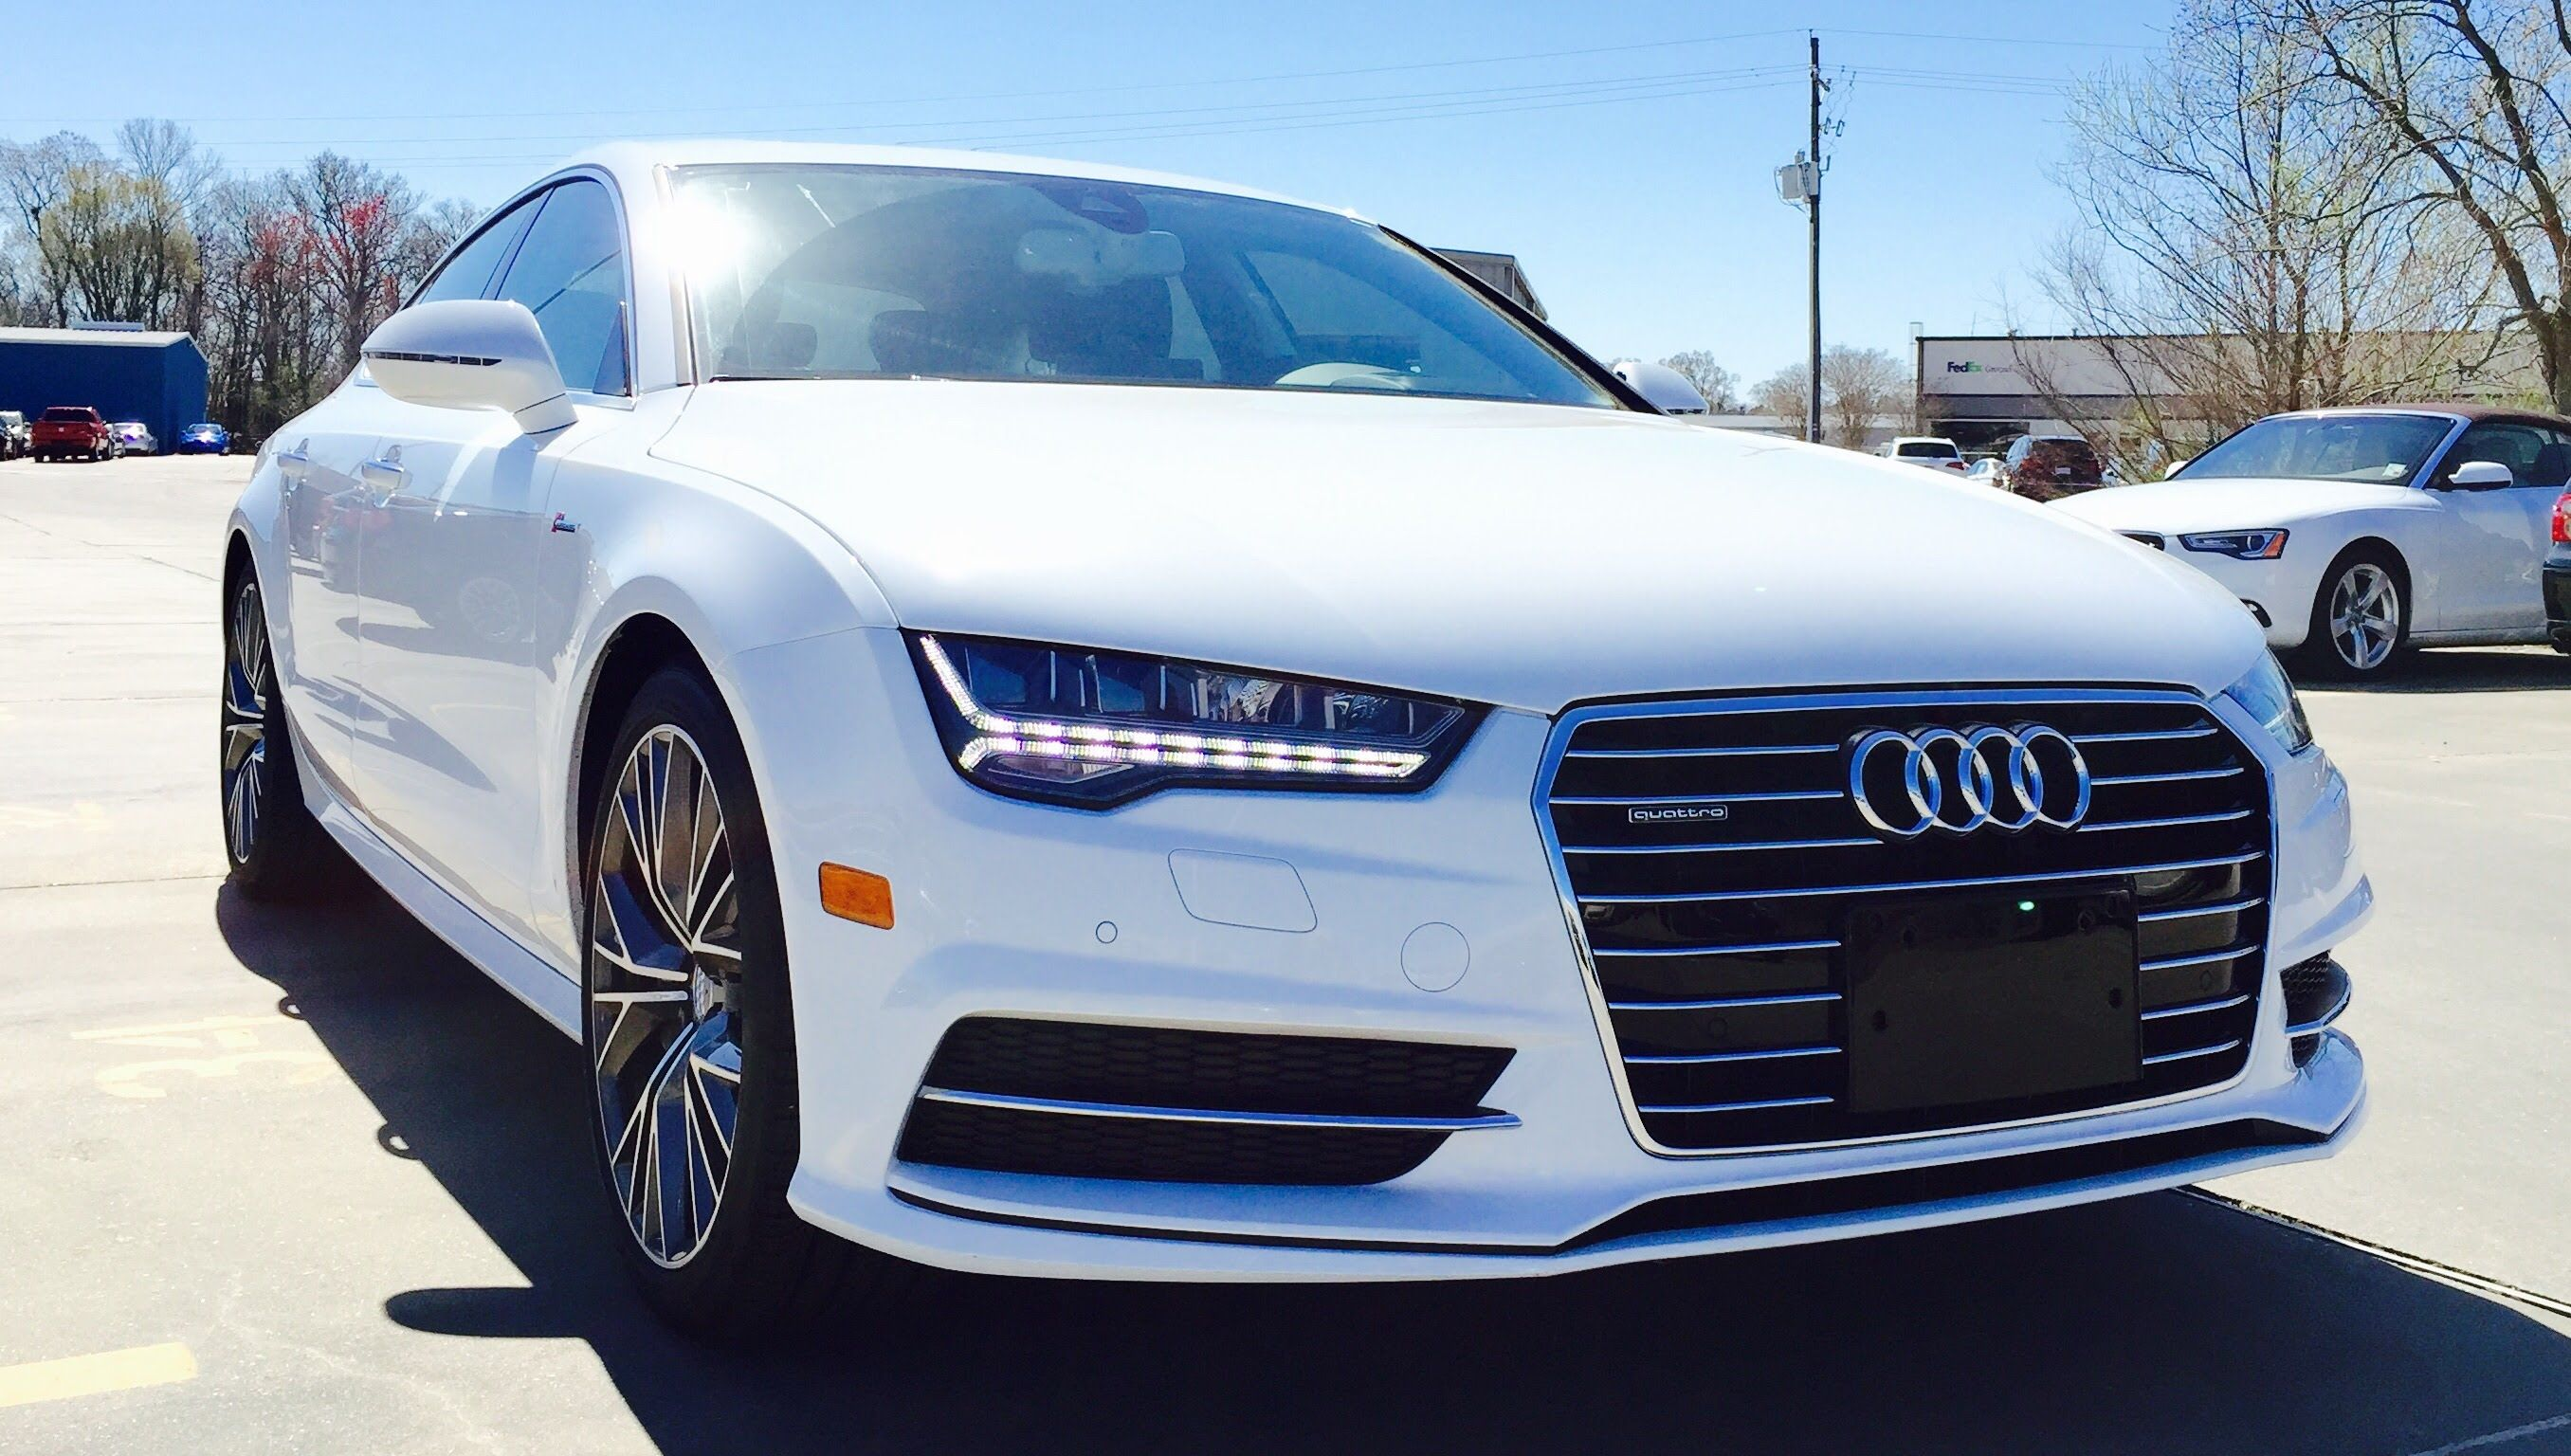 2016 audi a7 review interior and price http www autos